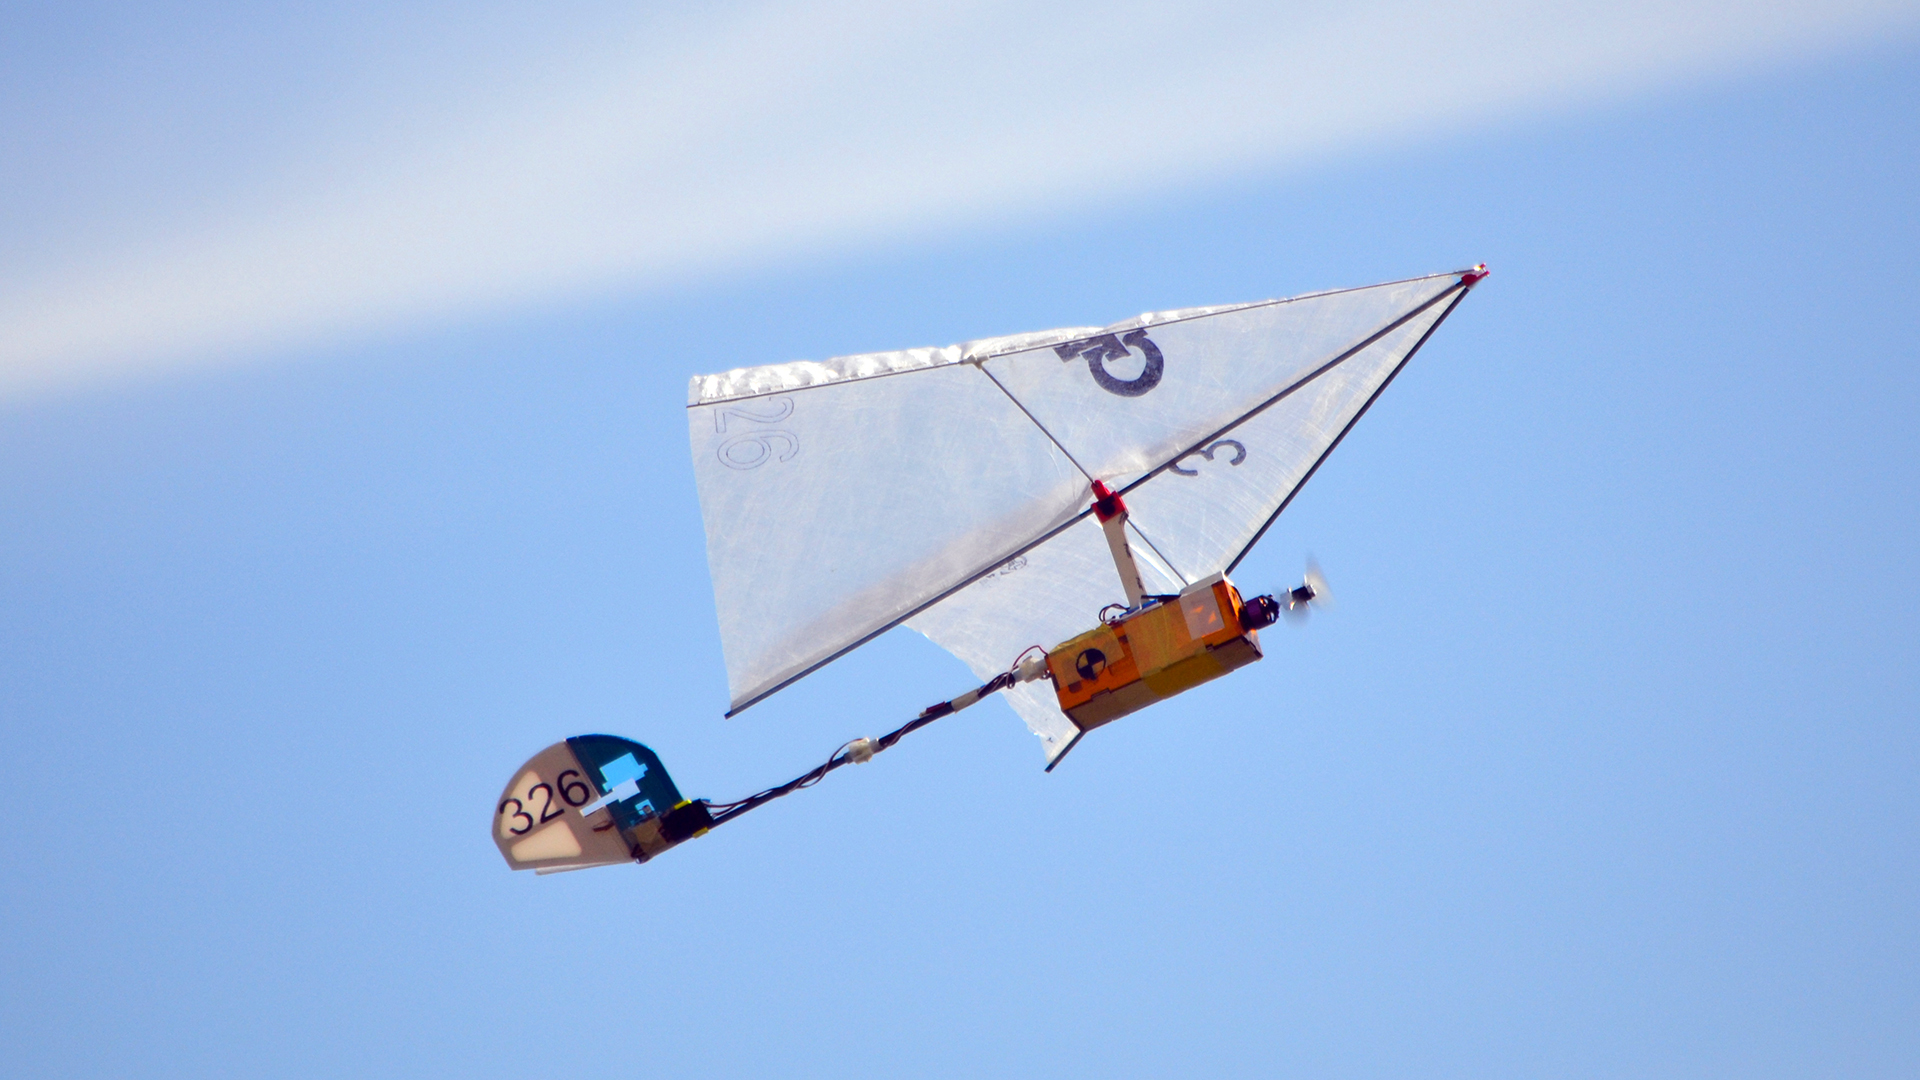 Collegiate Teams Compete at RC Airplane Heavy-Lift Challenge - Tested